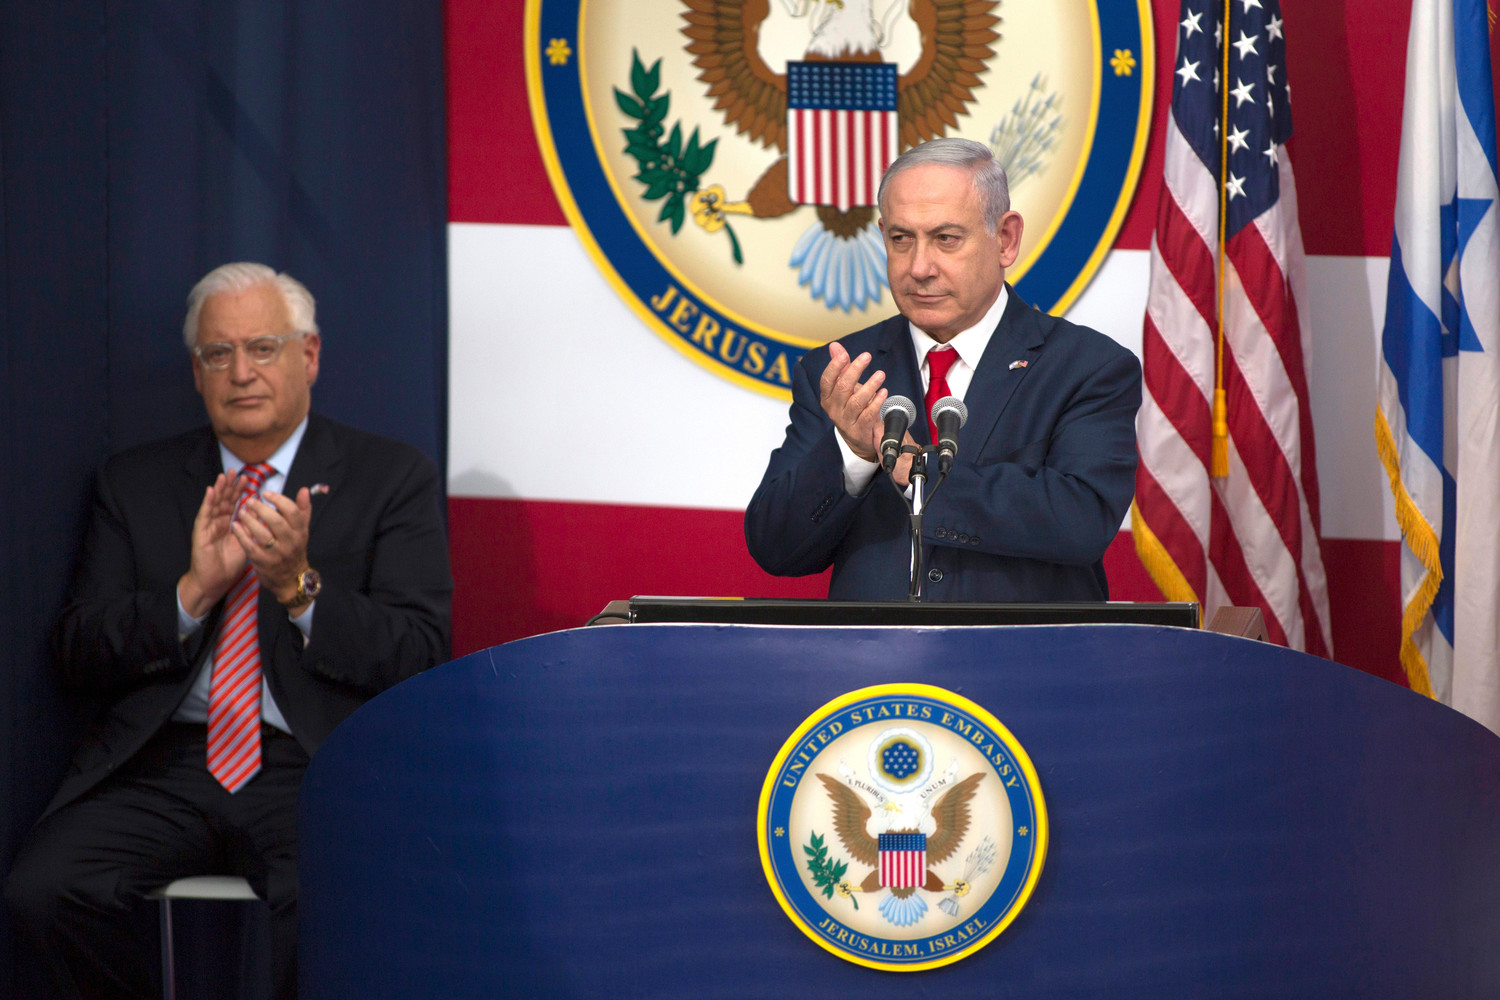 Israeli Prime Minister Benjamin Netanyahu, flanked by U.S. Ambassador David Friedman, speaks at the opening of the U.S. Embassy in Jerusalem, on May 14.